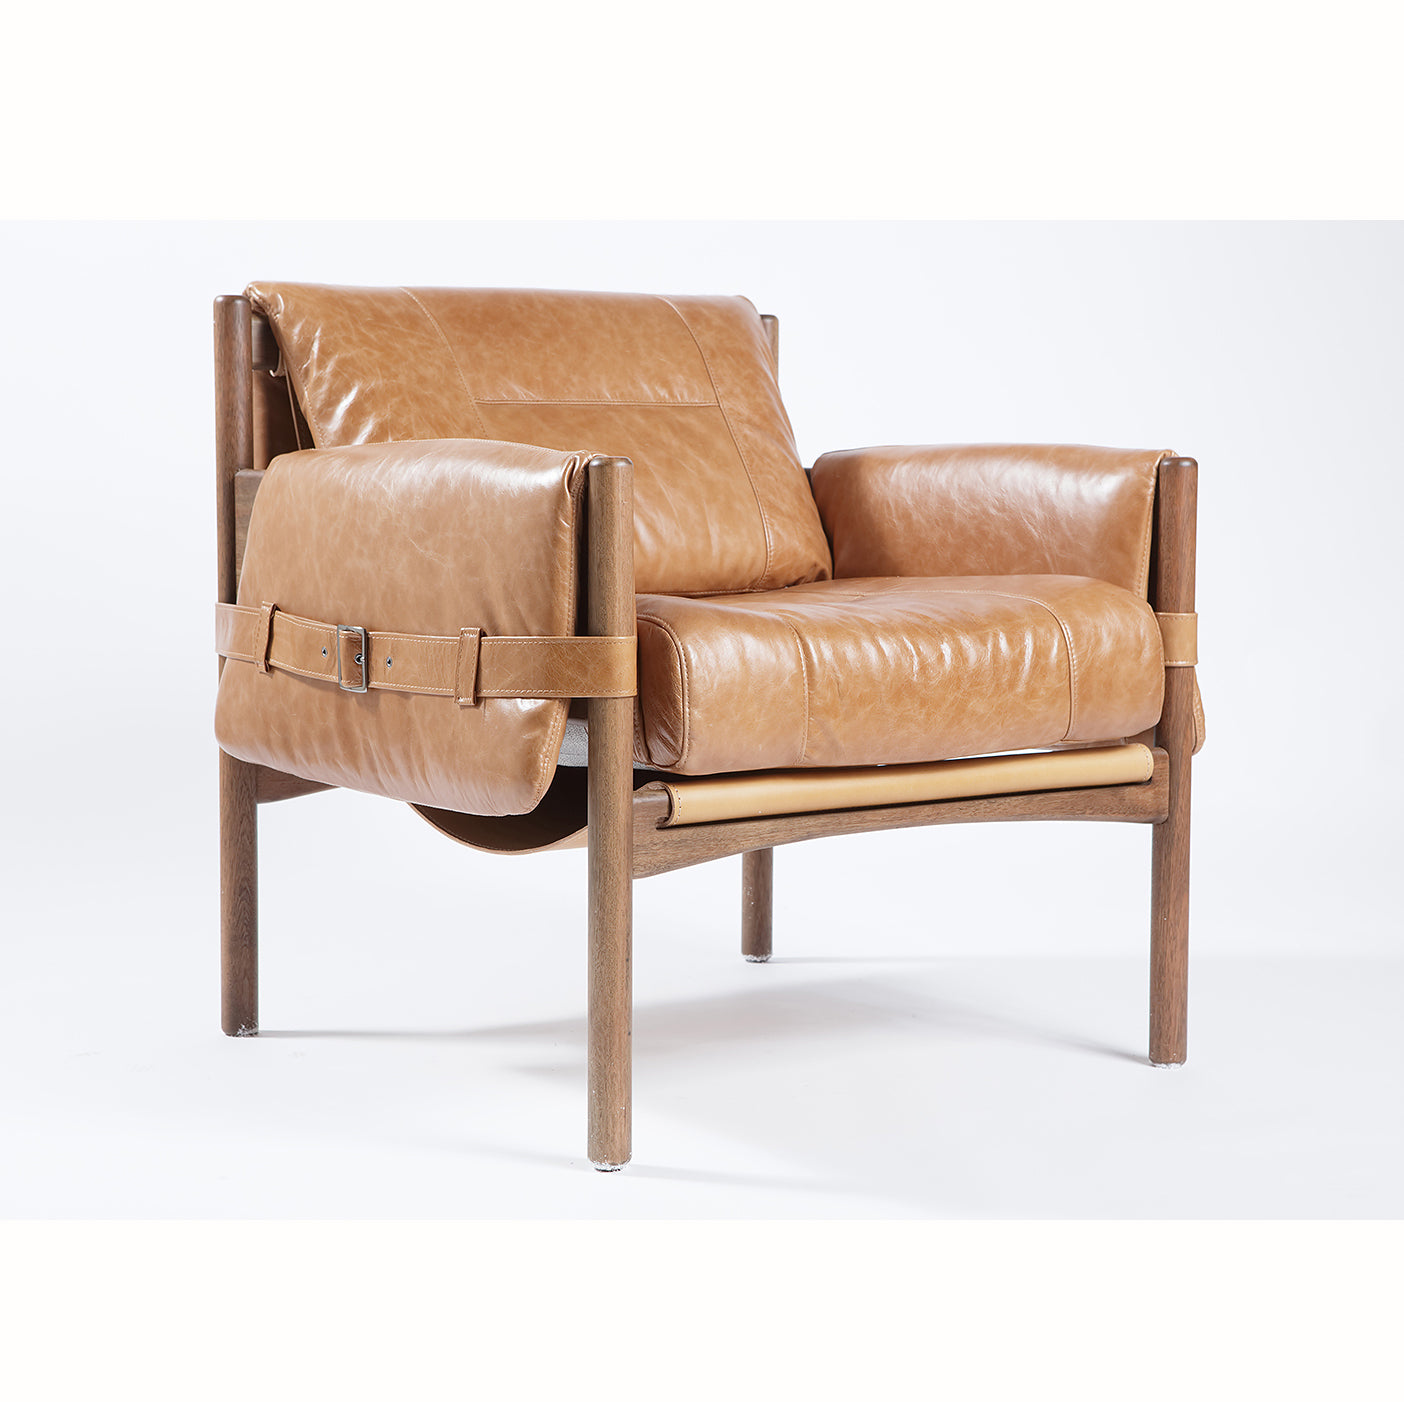 Safari Leather Lounge Chair - Sunset